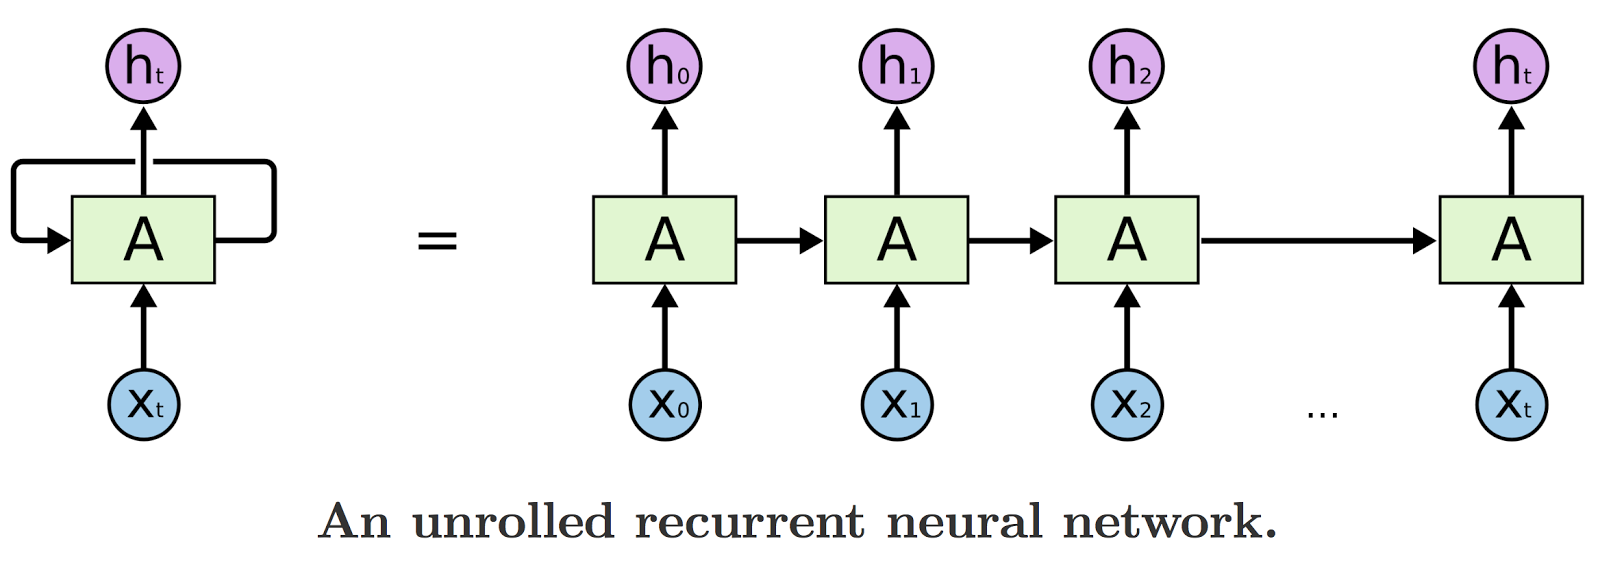 Unrolled recurrent neural network